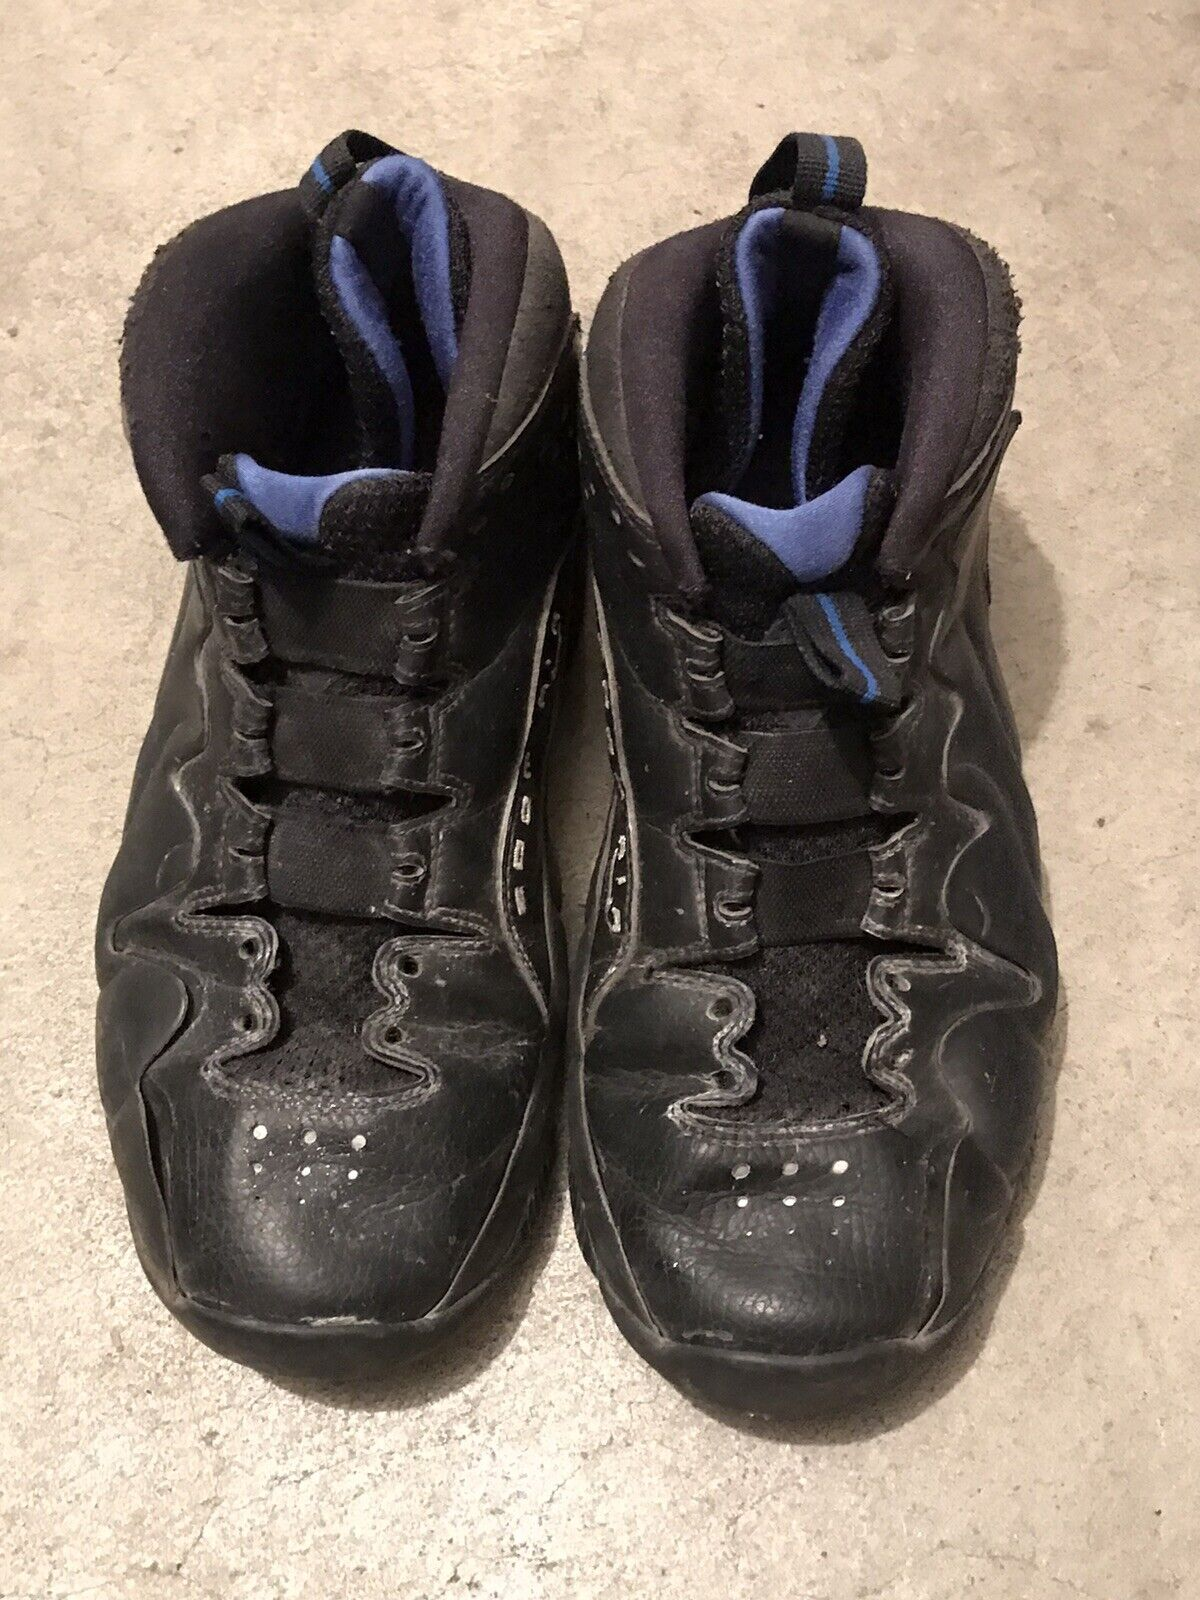 pre- owned Nike Zoom Men's size 8 and Adidas Black  Basketball Shoes on eBay thumbnail